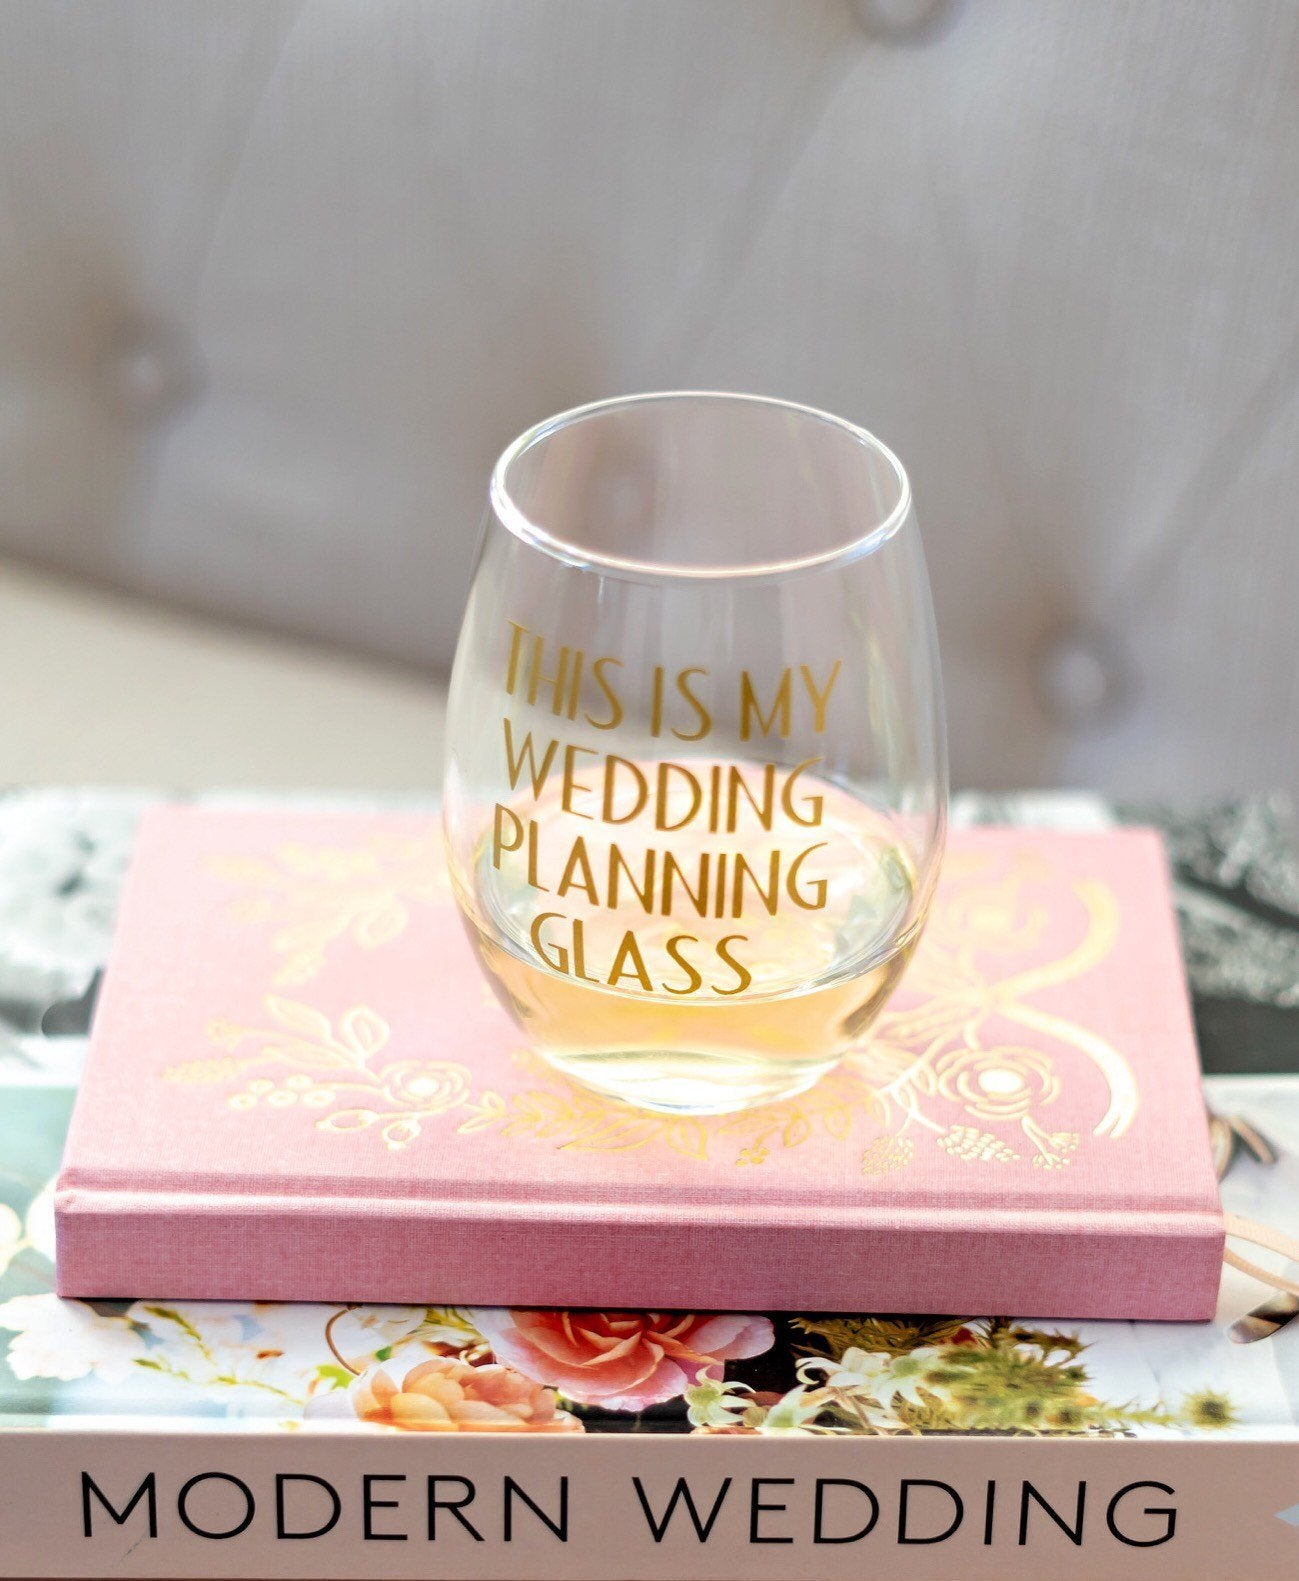 This is my wedding planning glass, engagement gift for bride, wedding planning gift, engagement wine glass, wedding planner gift, fiancé